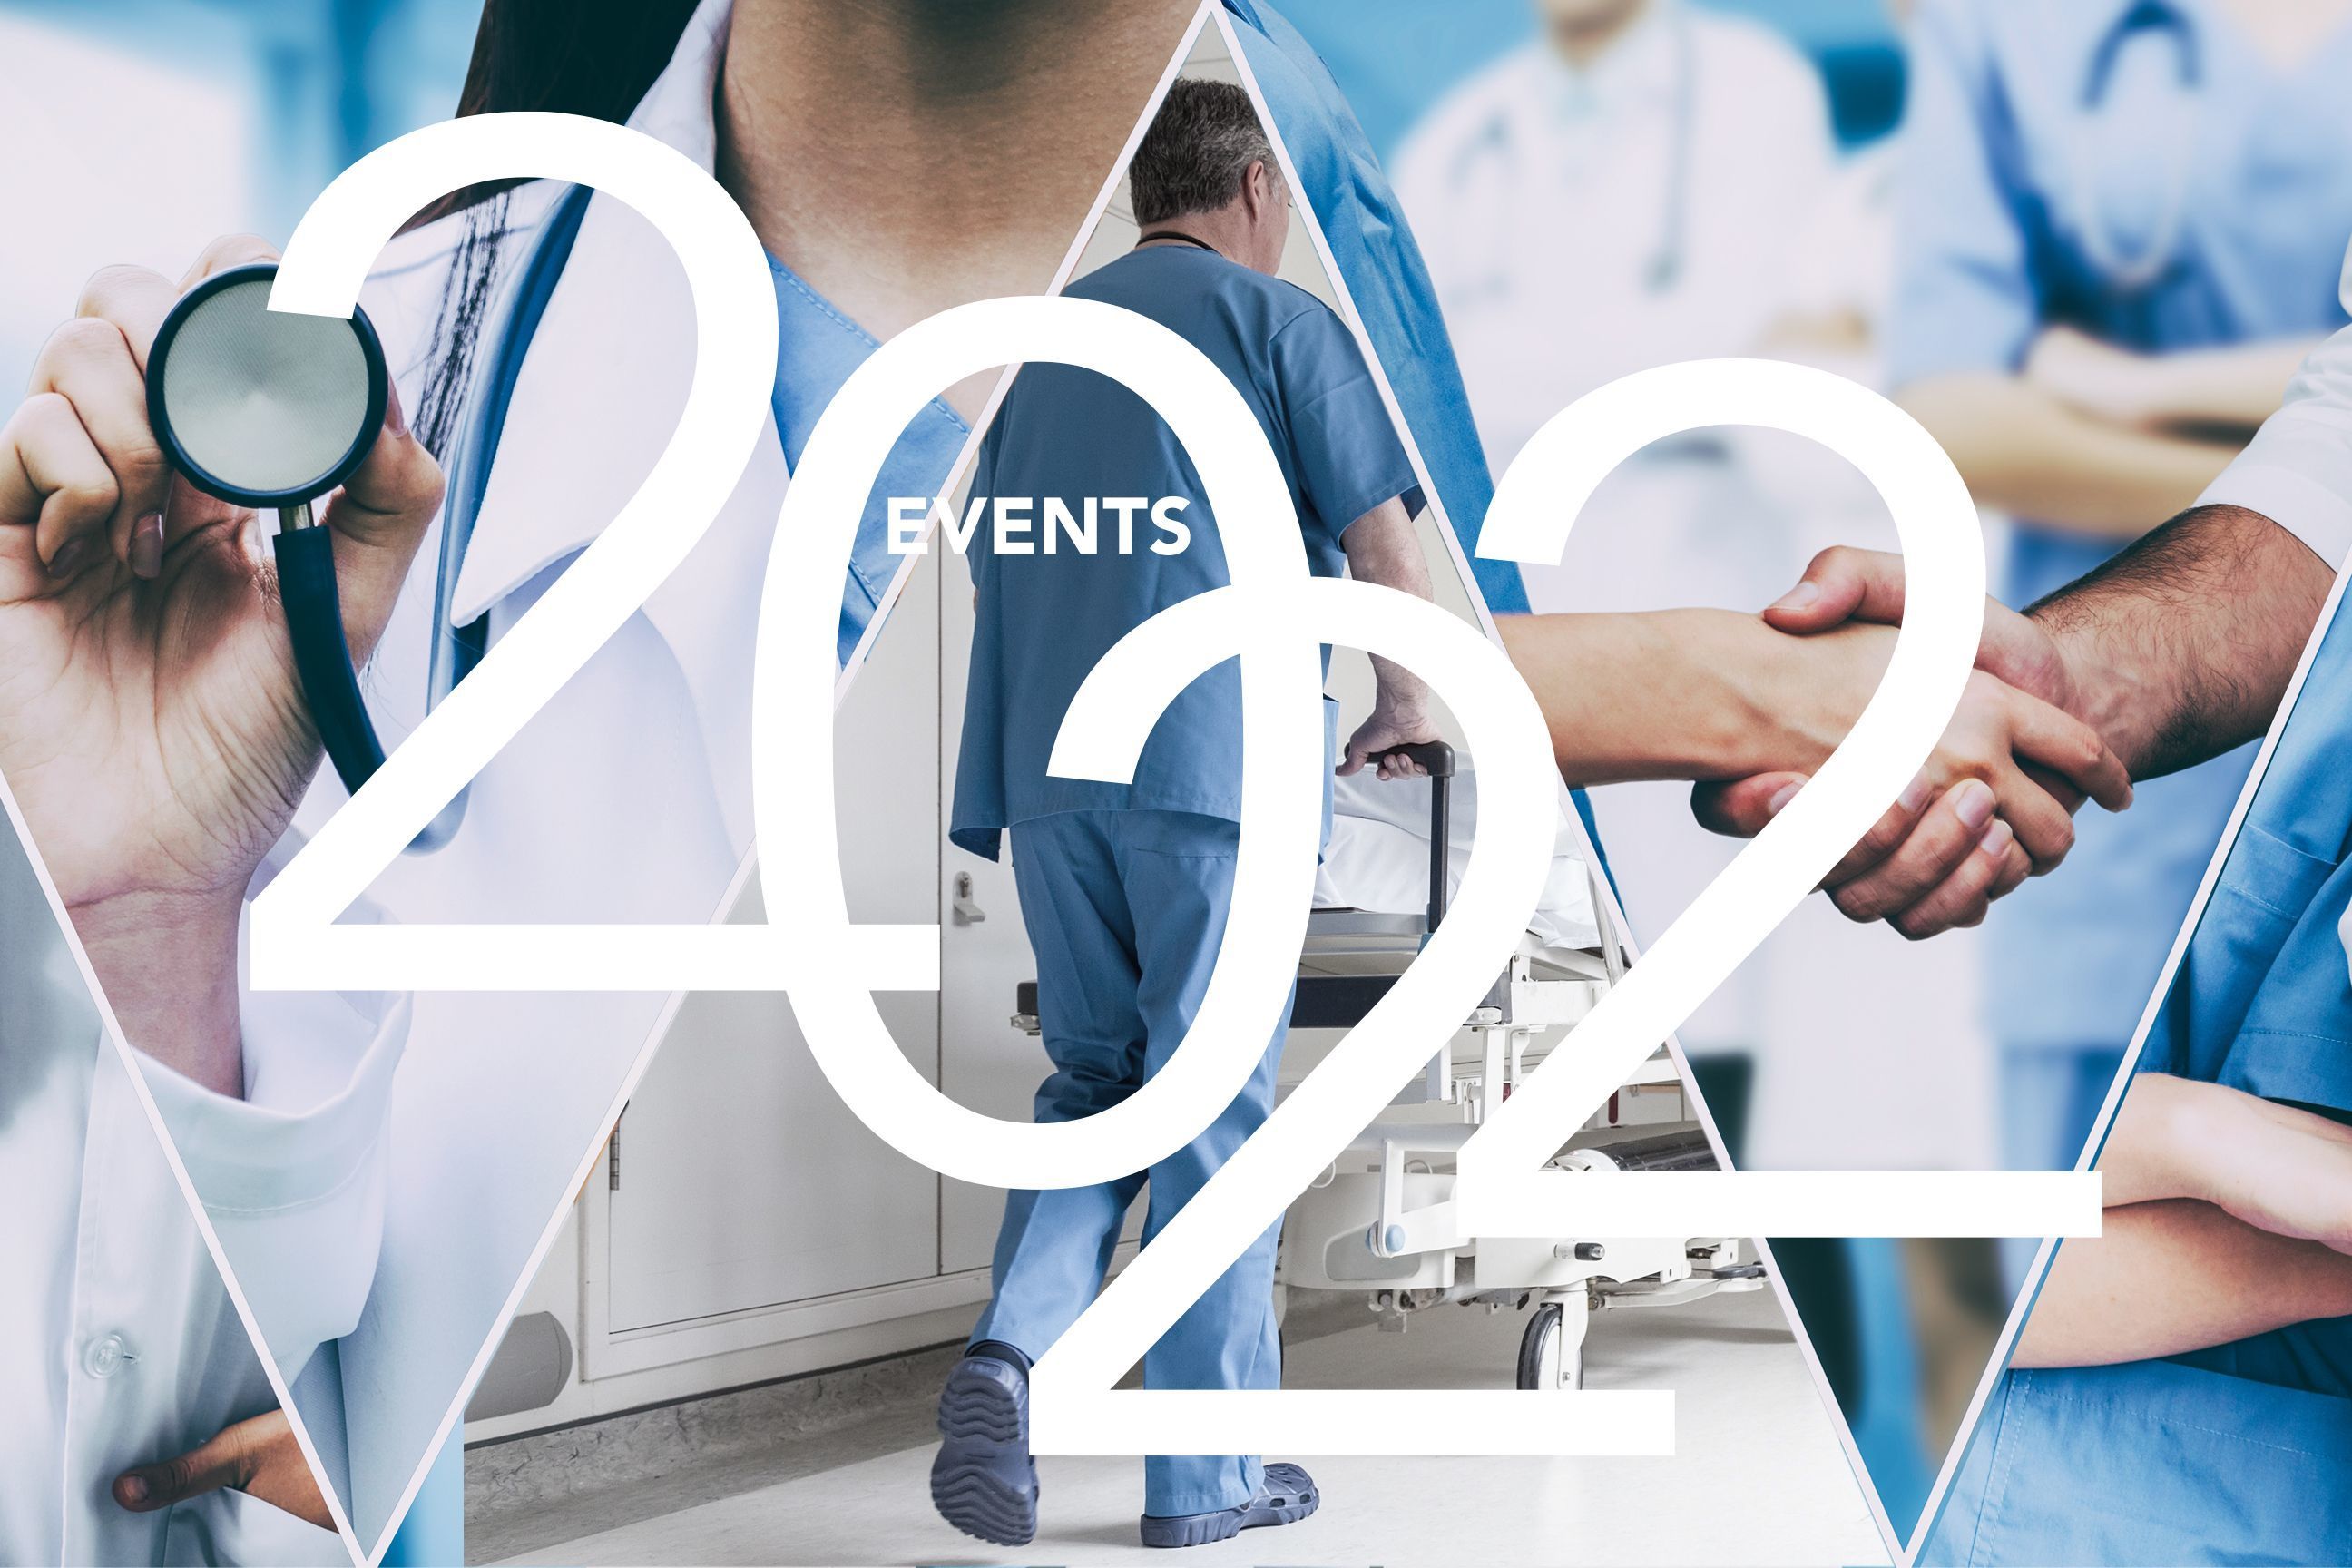 Upcoming 2022 Events